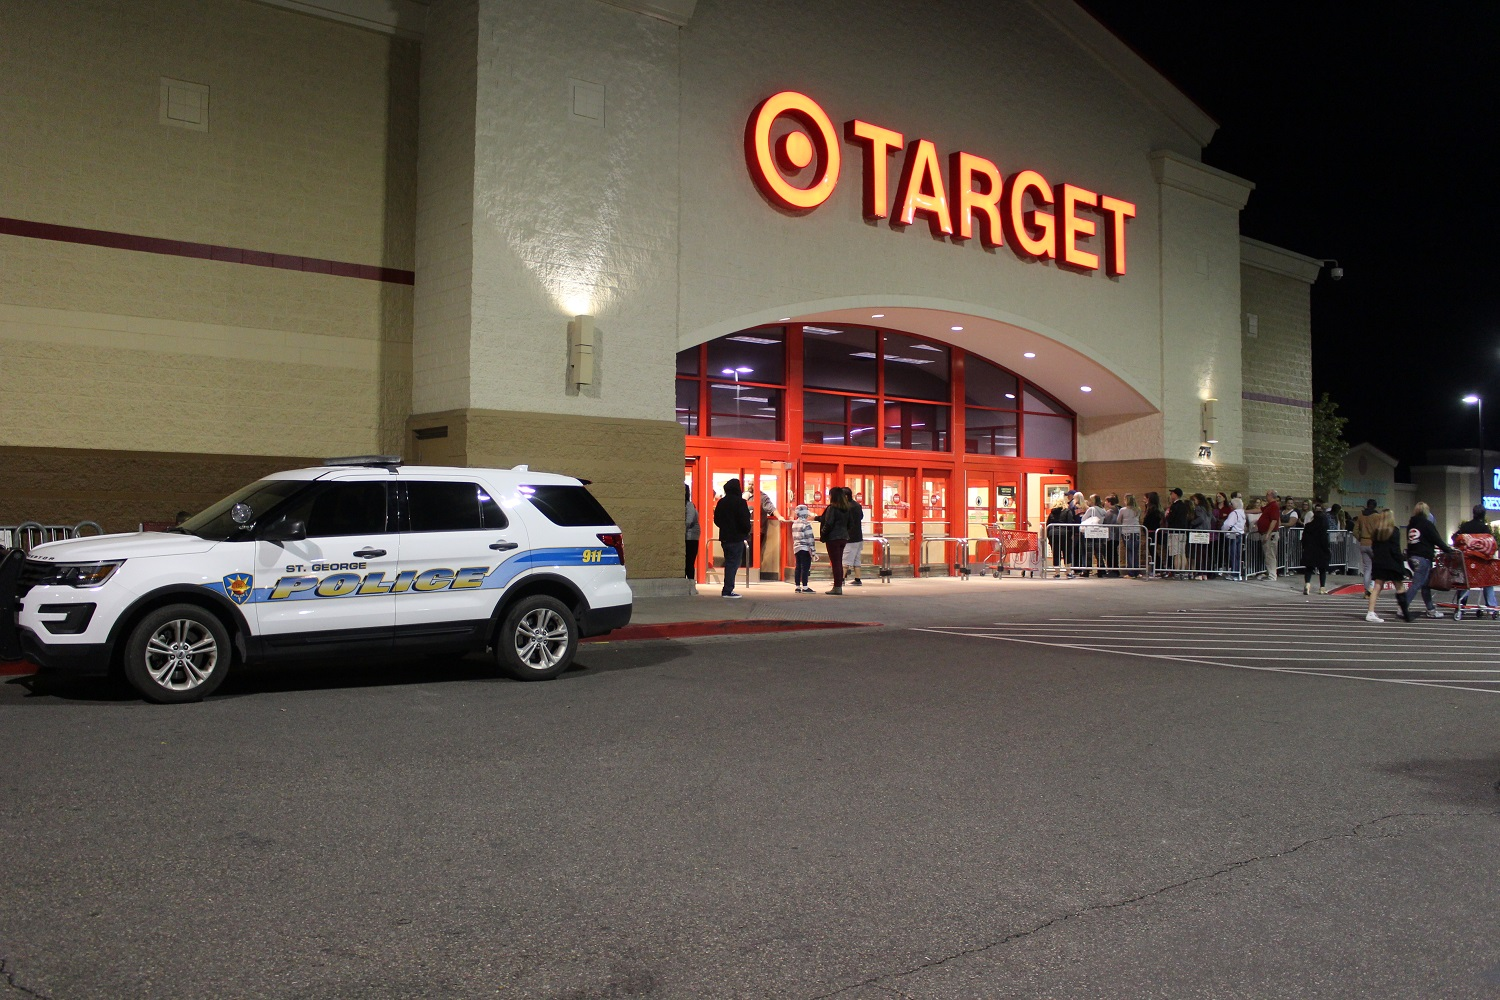 Customers entered 15 at a time every 20 seconds when doors opened during Target's Black Friday 2016,with St. George Police officers on hand Thursday, St. George, Utah, Nov. 24, 2016 | Photo by Cody Blowers, St. George News